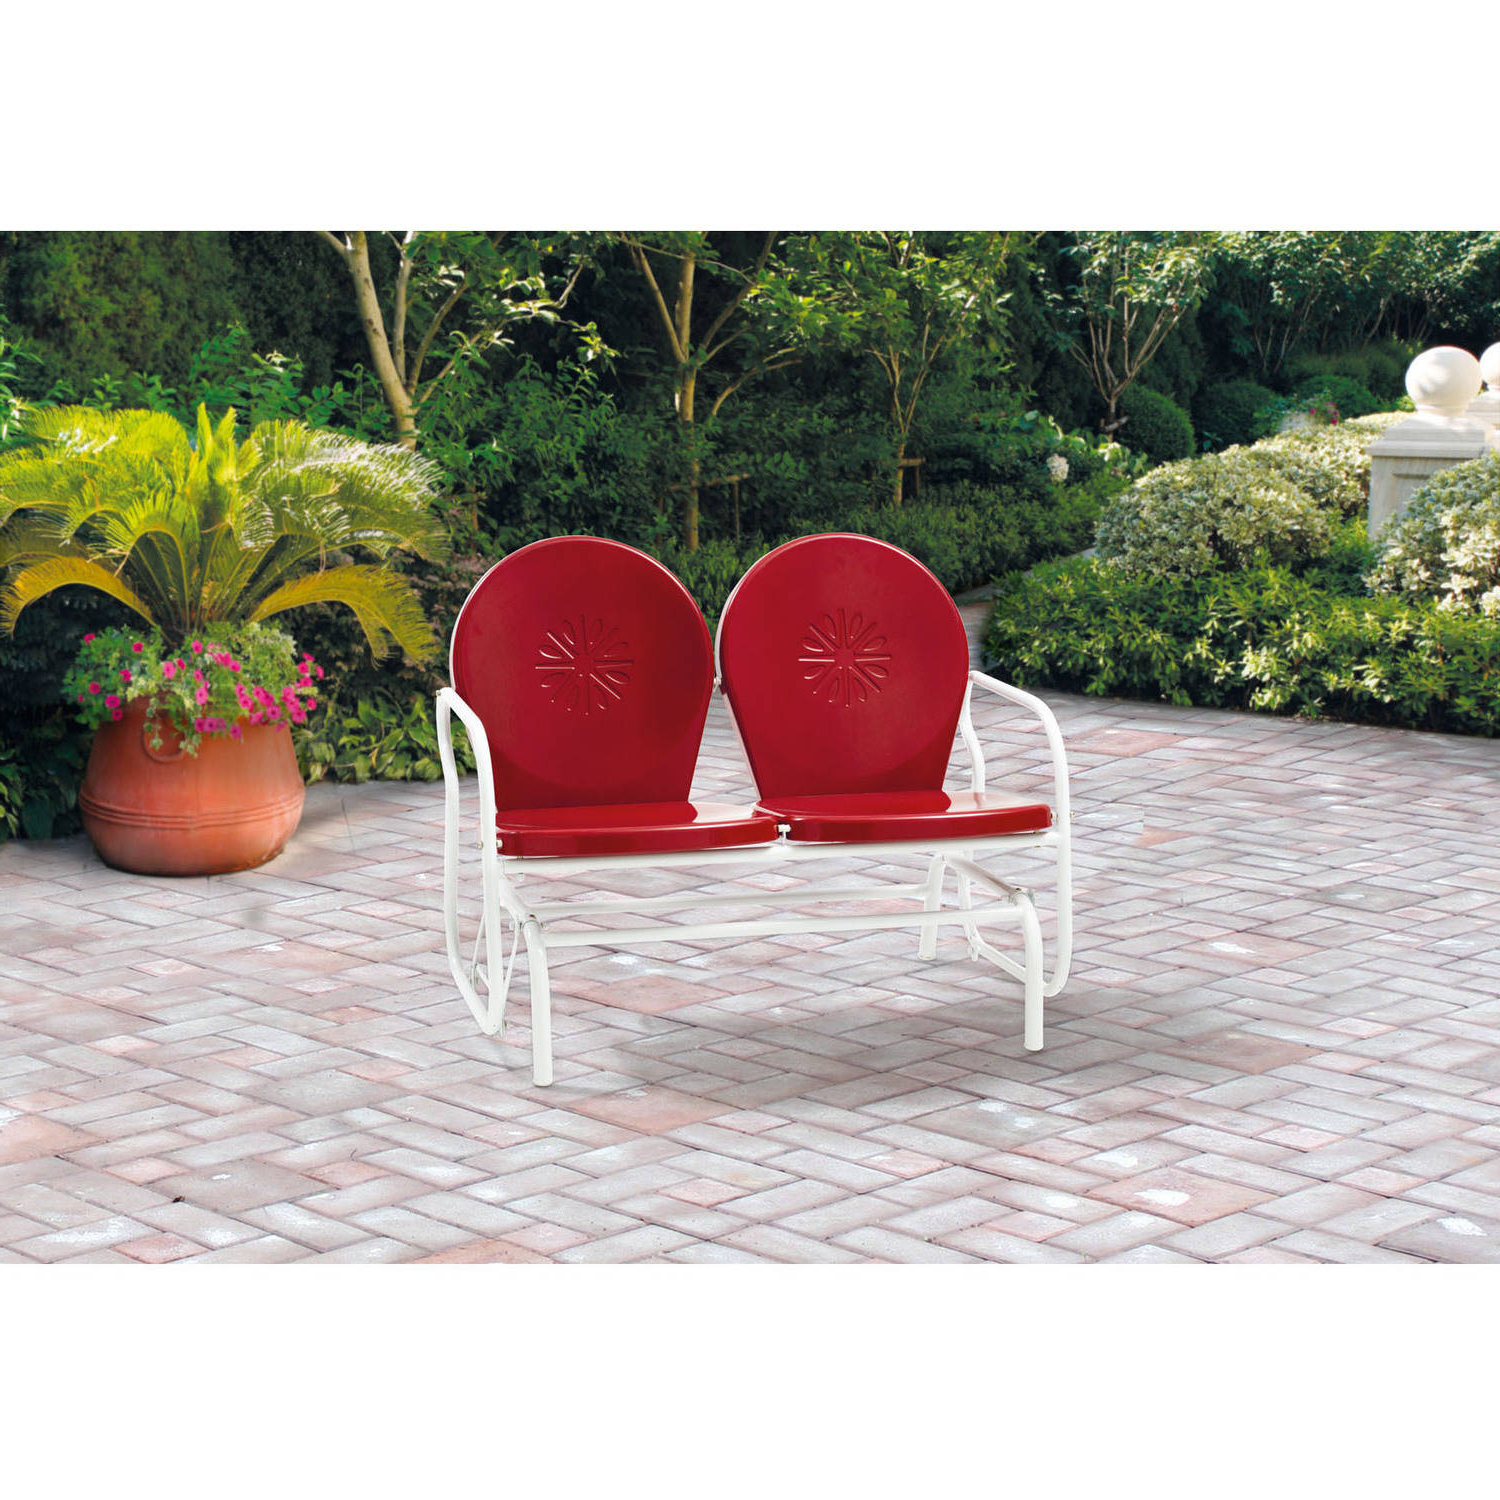 Retro Furniture Patio Steel Metal Porch Chairs Vintage Intended For 2020 Outdoor Patio Swing Glider Bench Chair S (View 22 of 30)